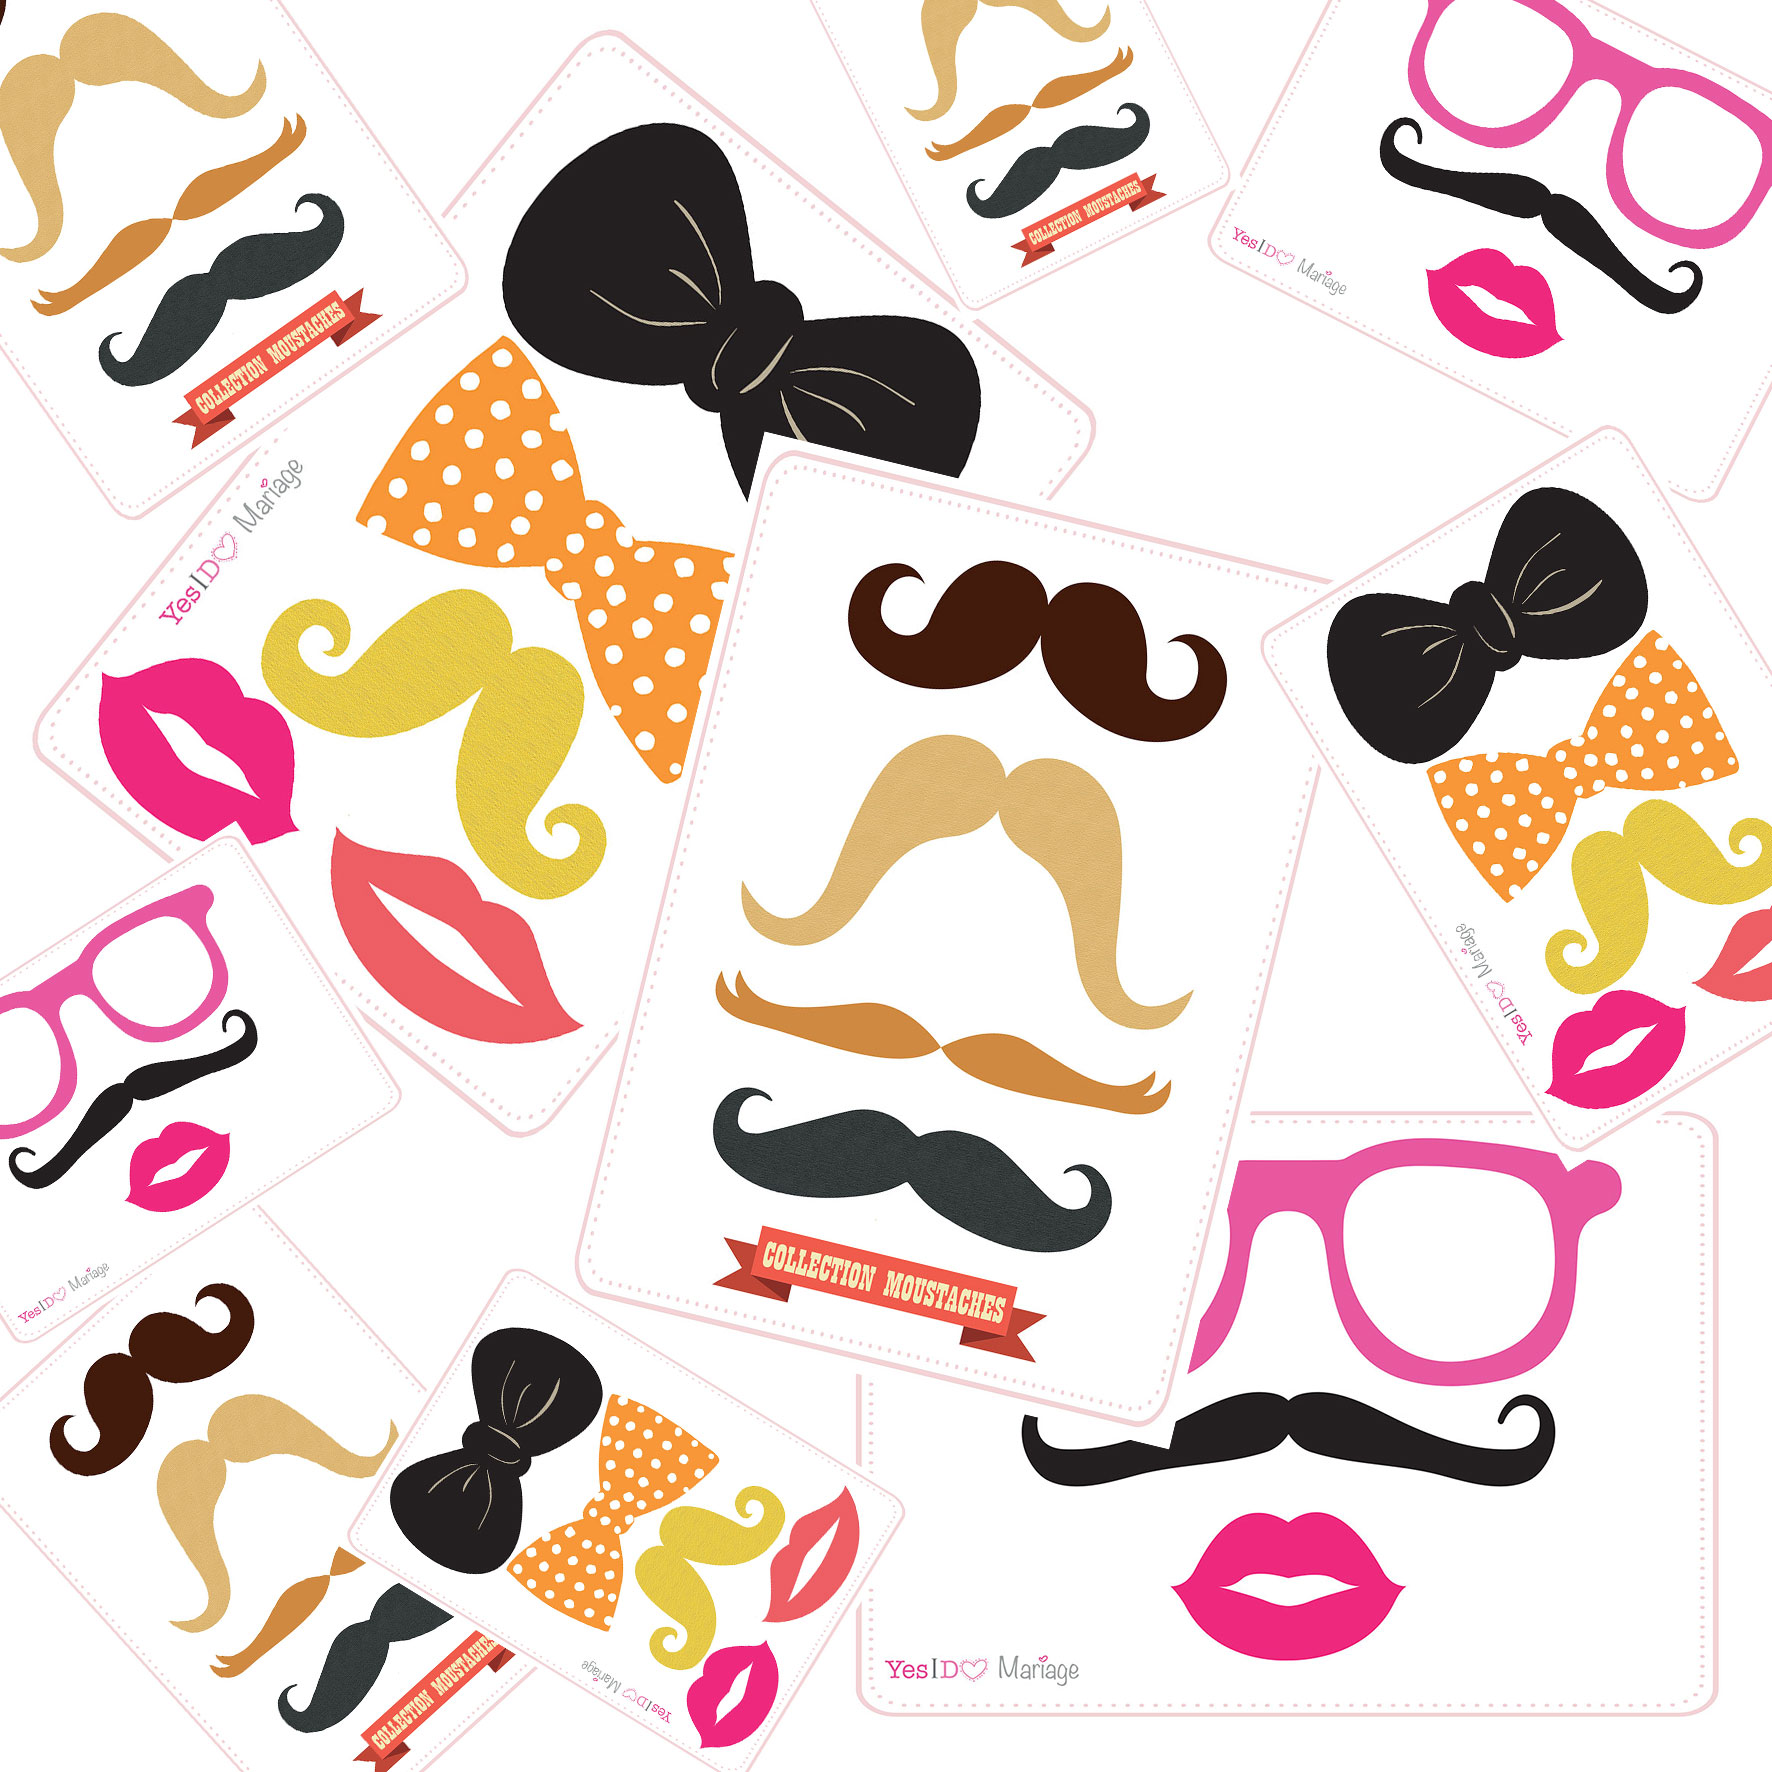 photobooth mariage archives ma jolie toile. Black Bedroom Furniture Sets. Home Design Ideas